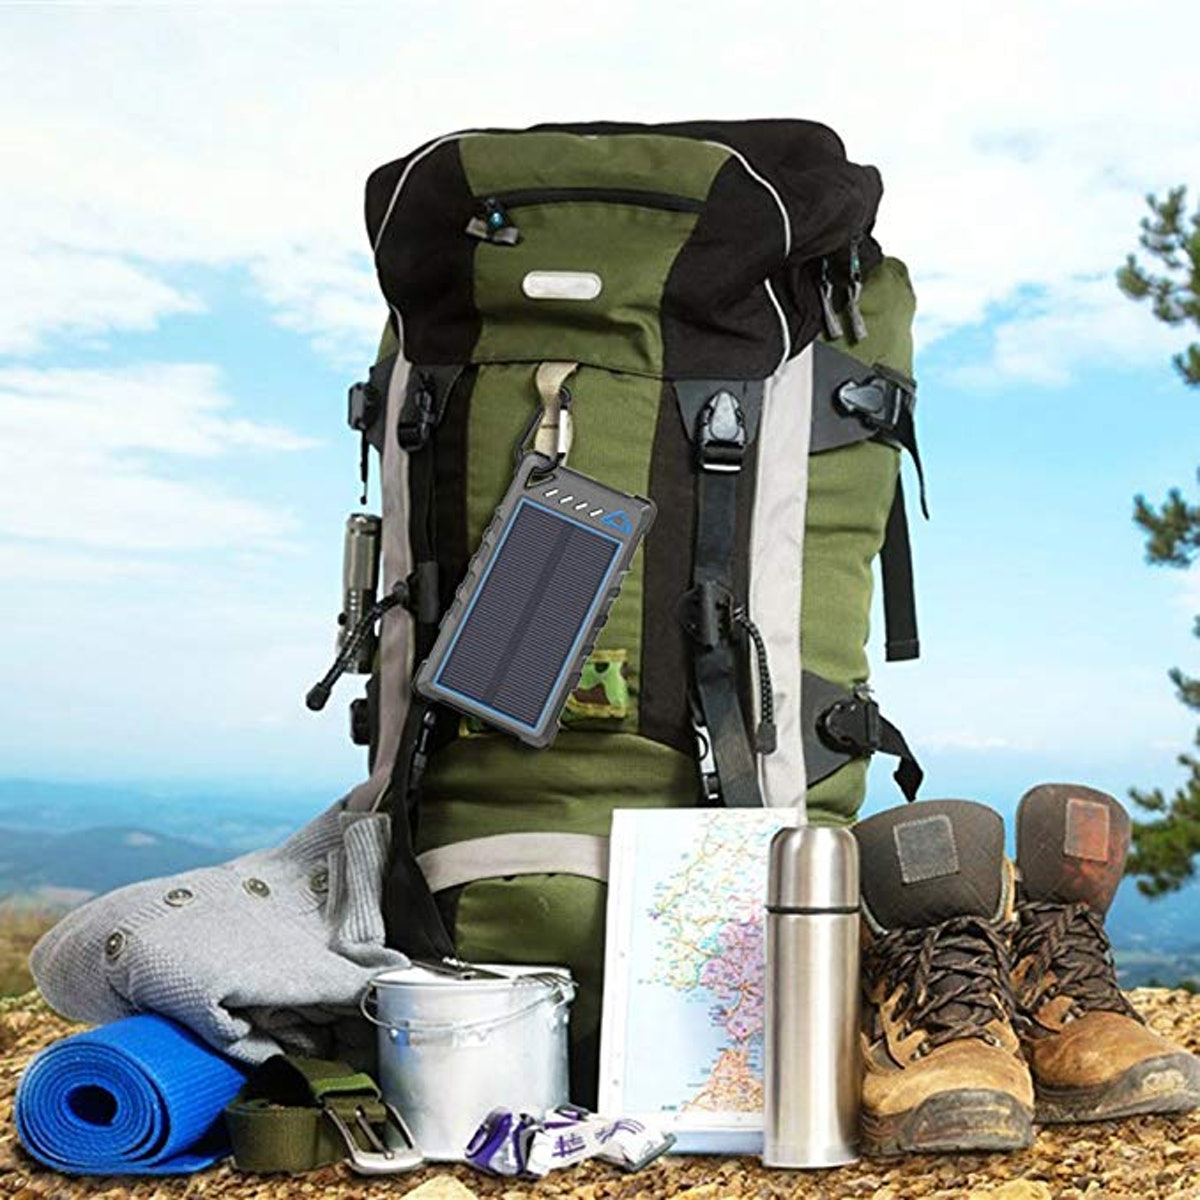 BEARTWO Portable Solar Charger